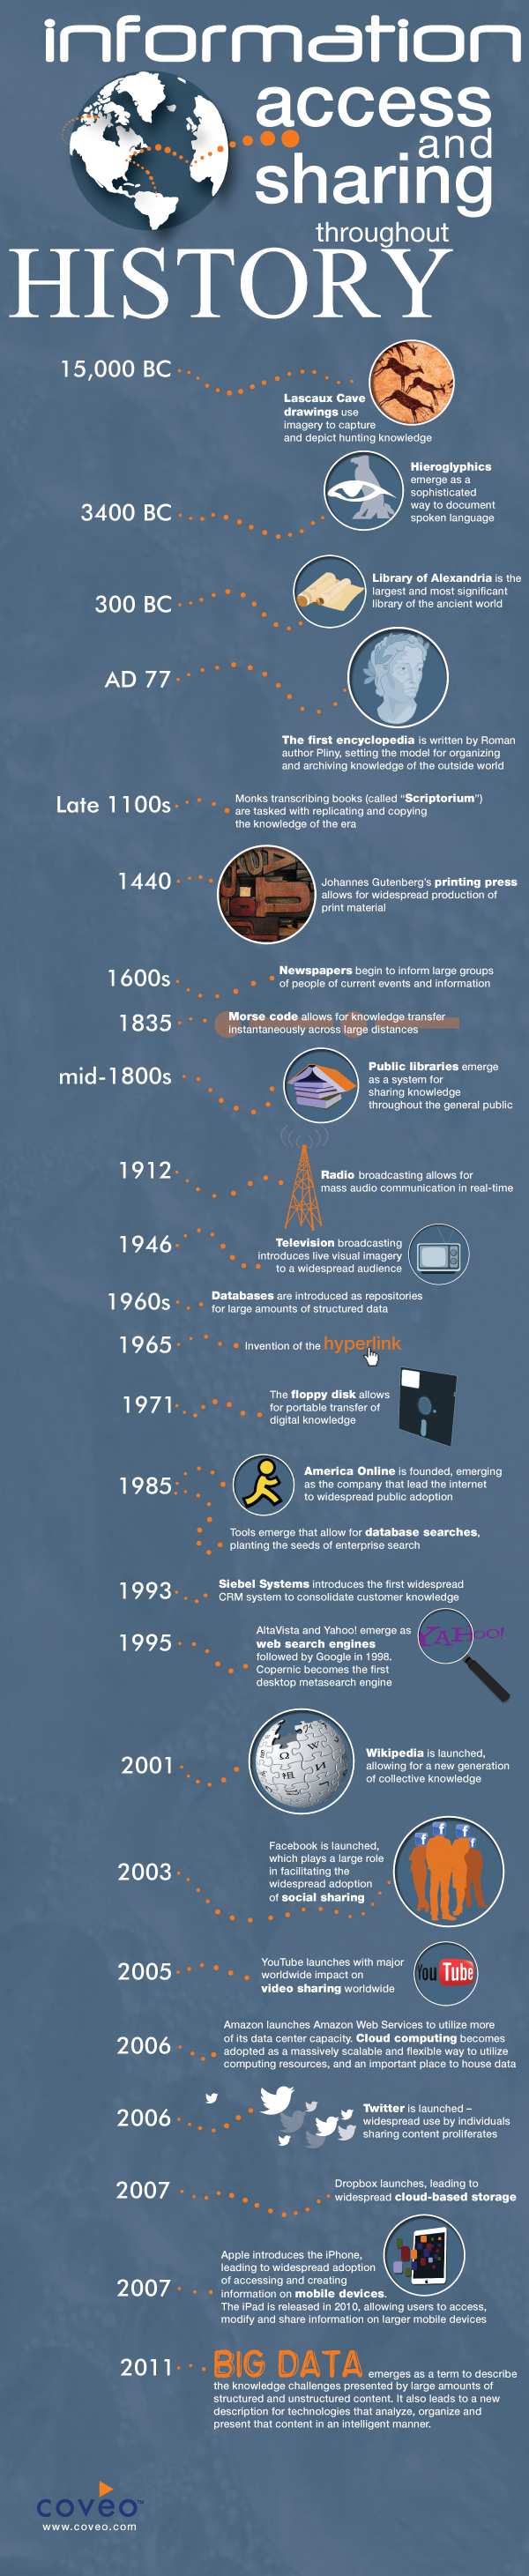 Knowledge in History-Infographic